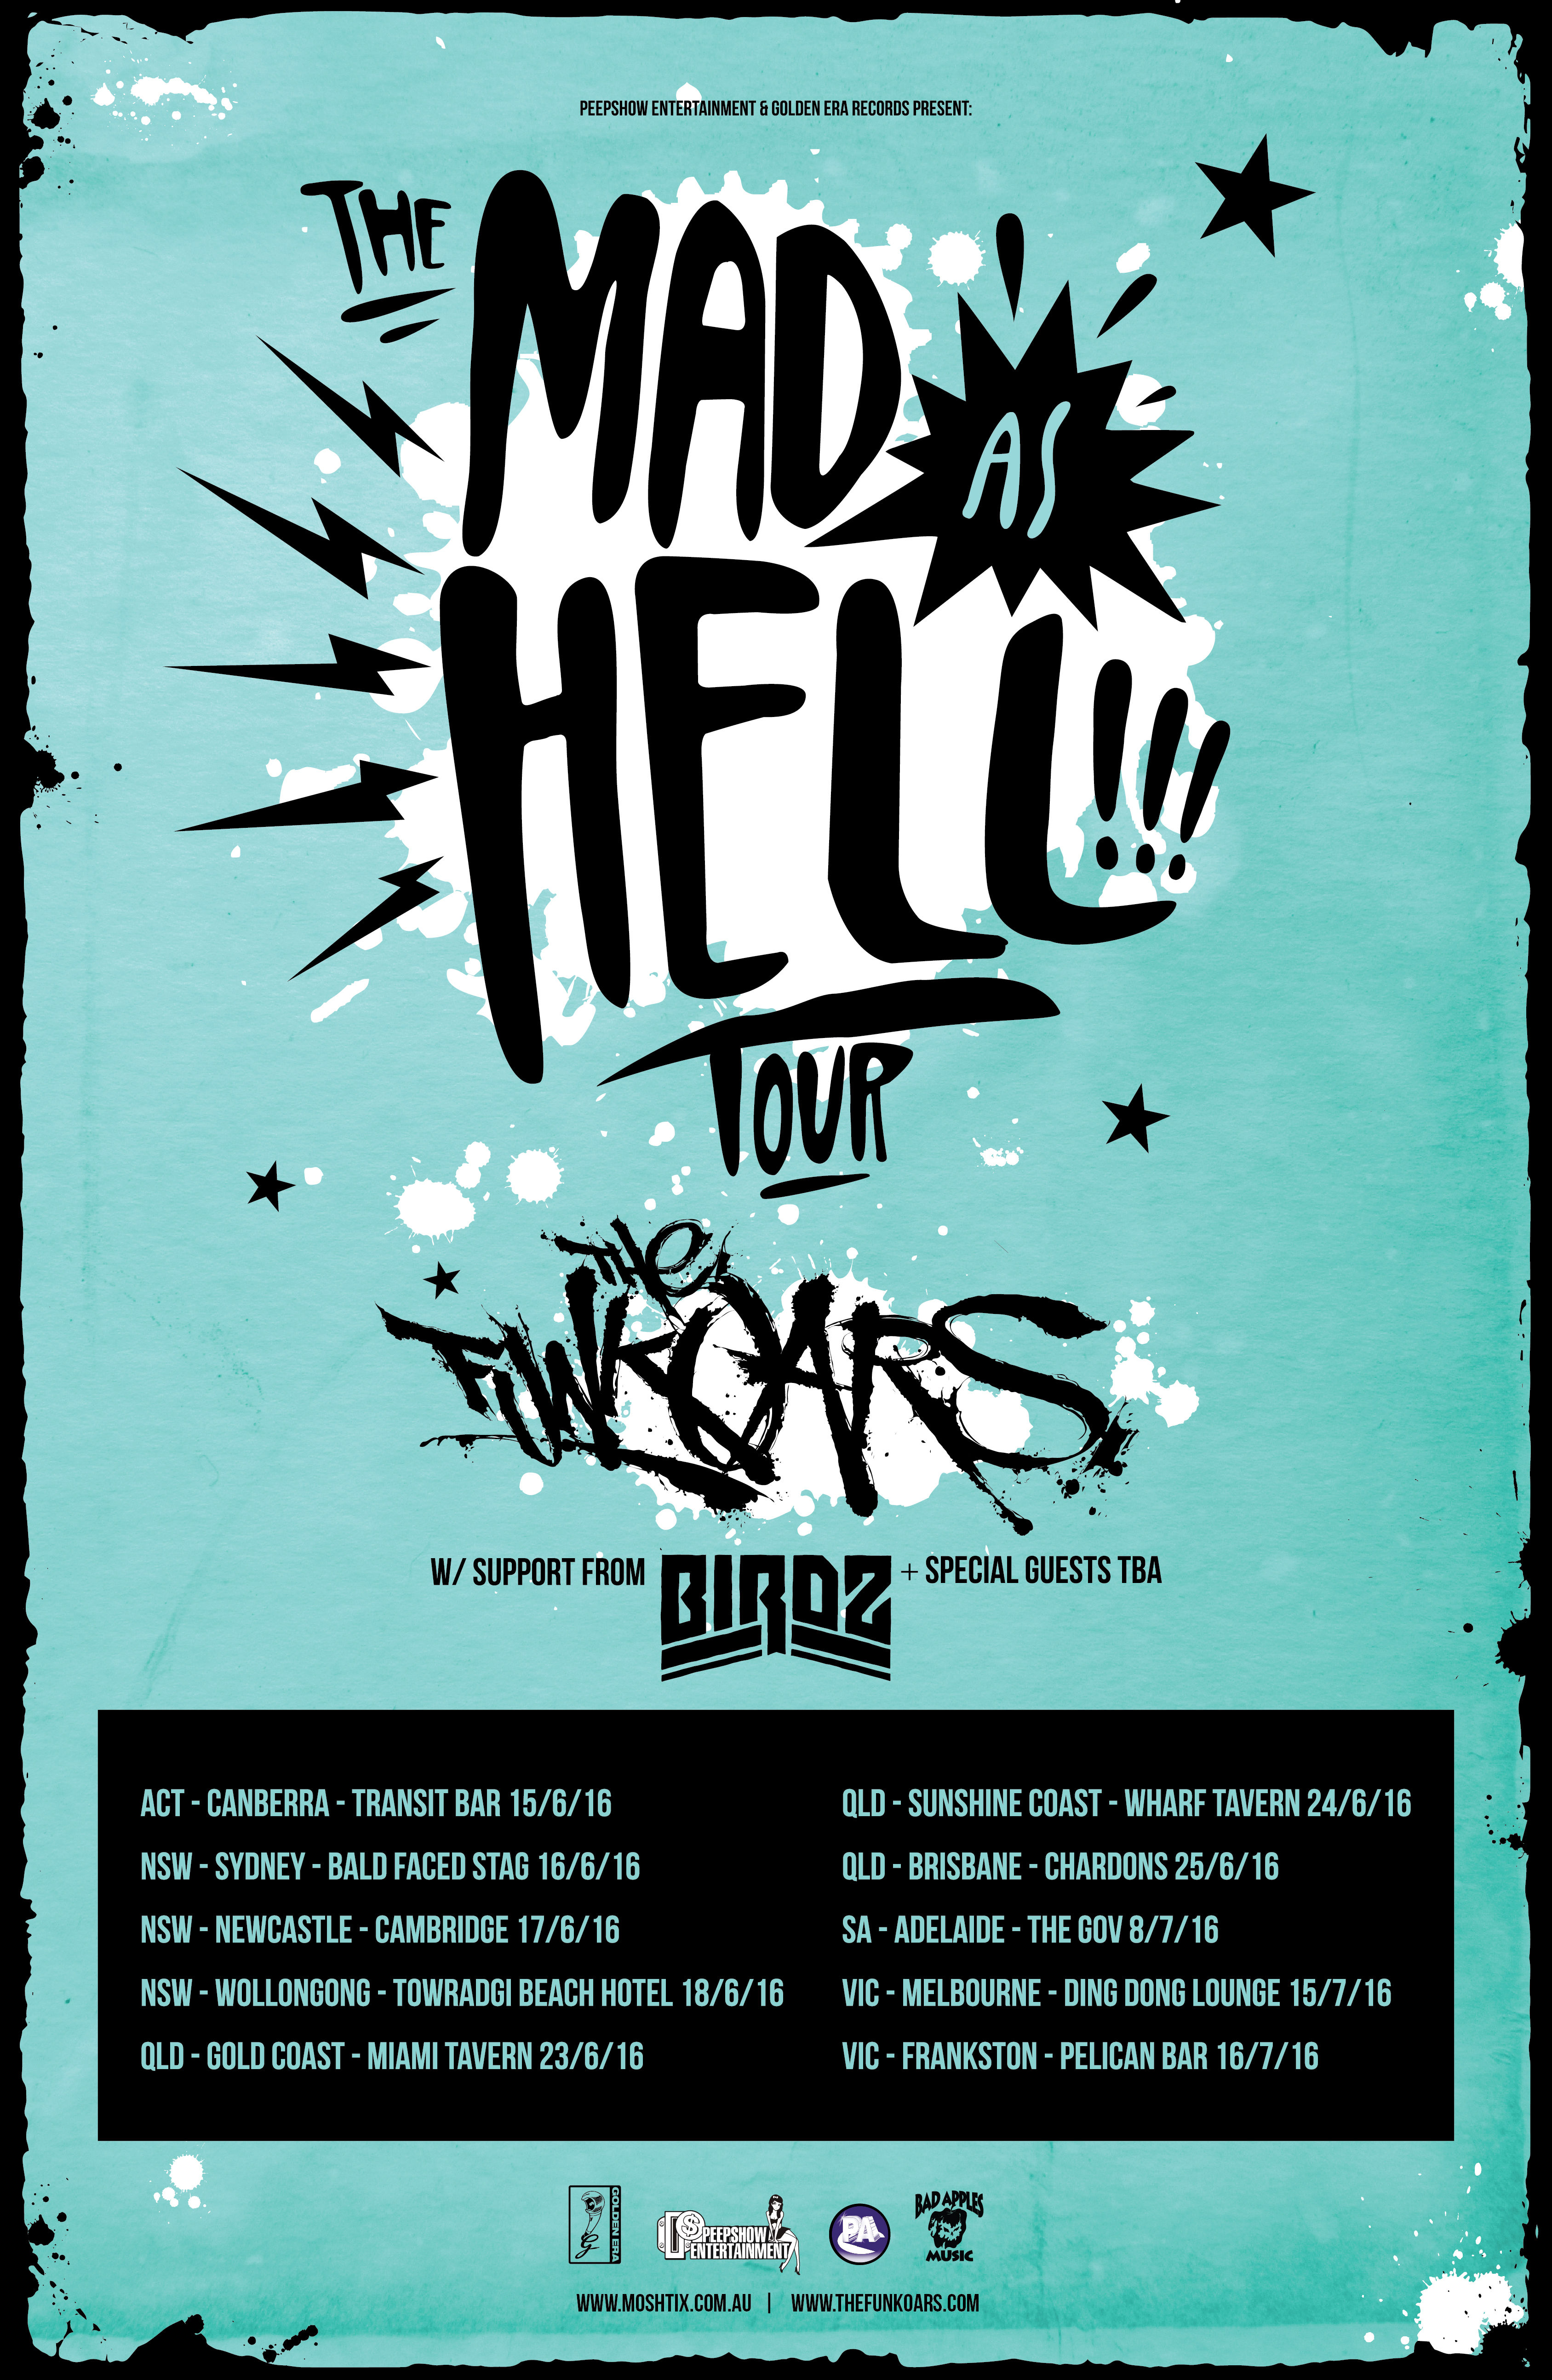 BIRDZ SUPPORTS THE FUNKOARS ON 'MAD AS HELL' TOUR